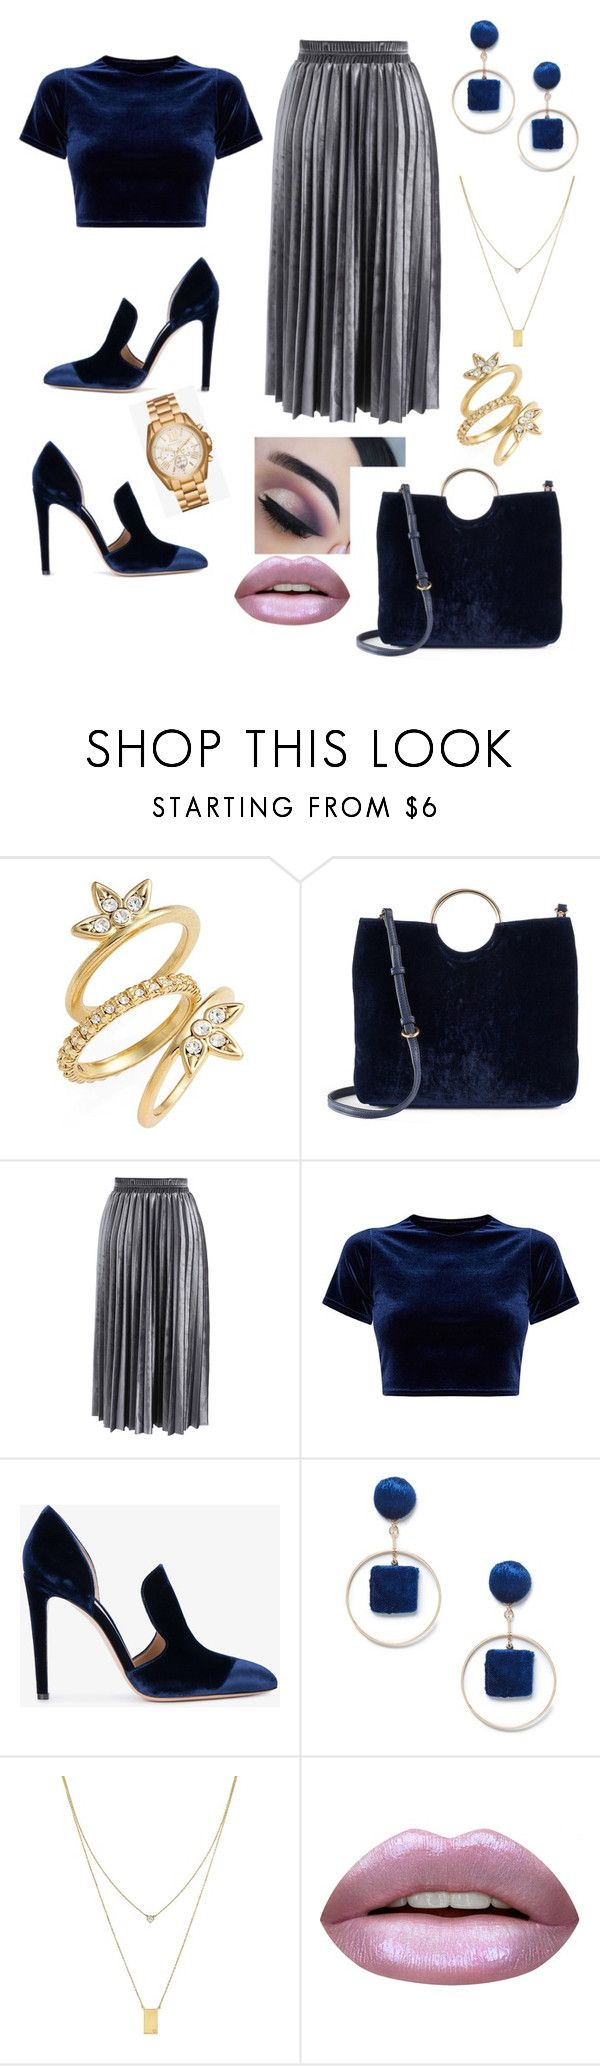 """""""Sadie"""" by loveisablindwar on Polyvore featuring Luv Aj, LC Lauren Conrad, Chicwish, Gianvito Rossi, Sole Society, Botkier, Huda Beauty and Michael Kors"""